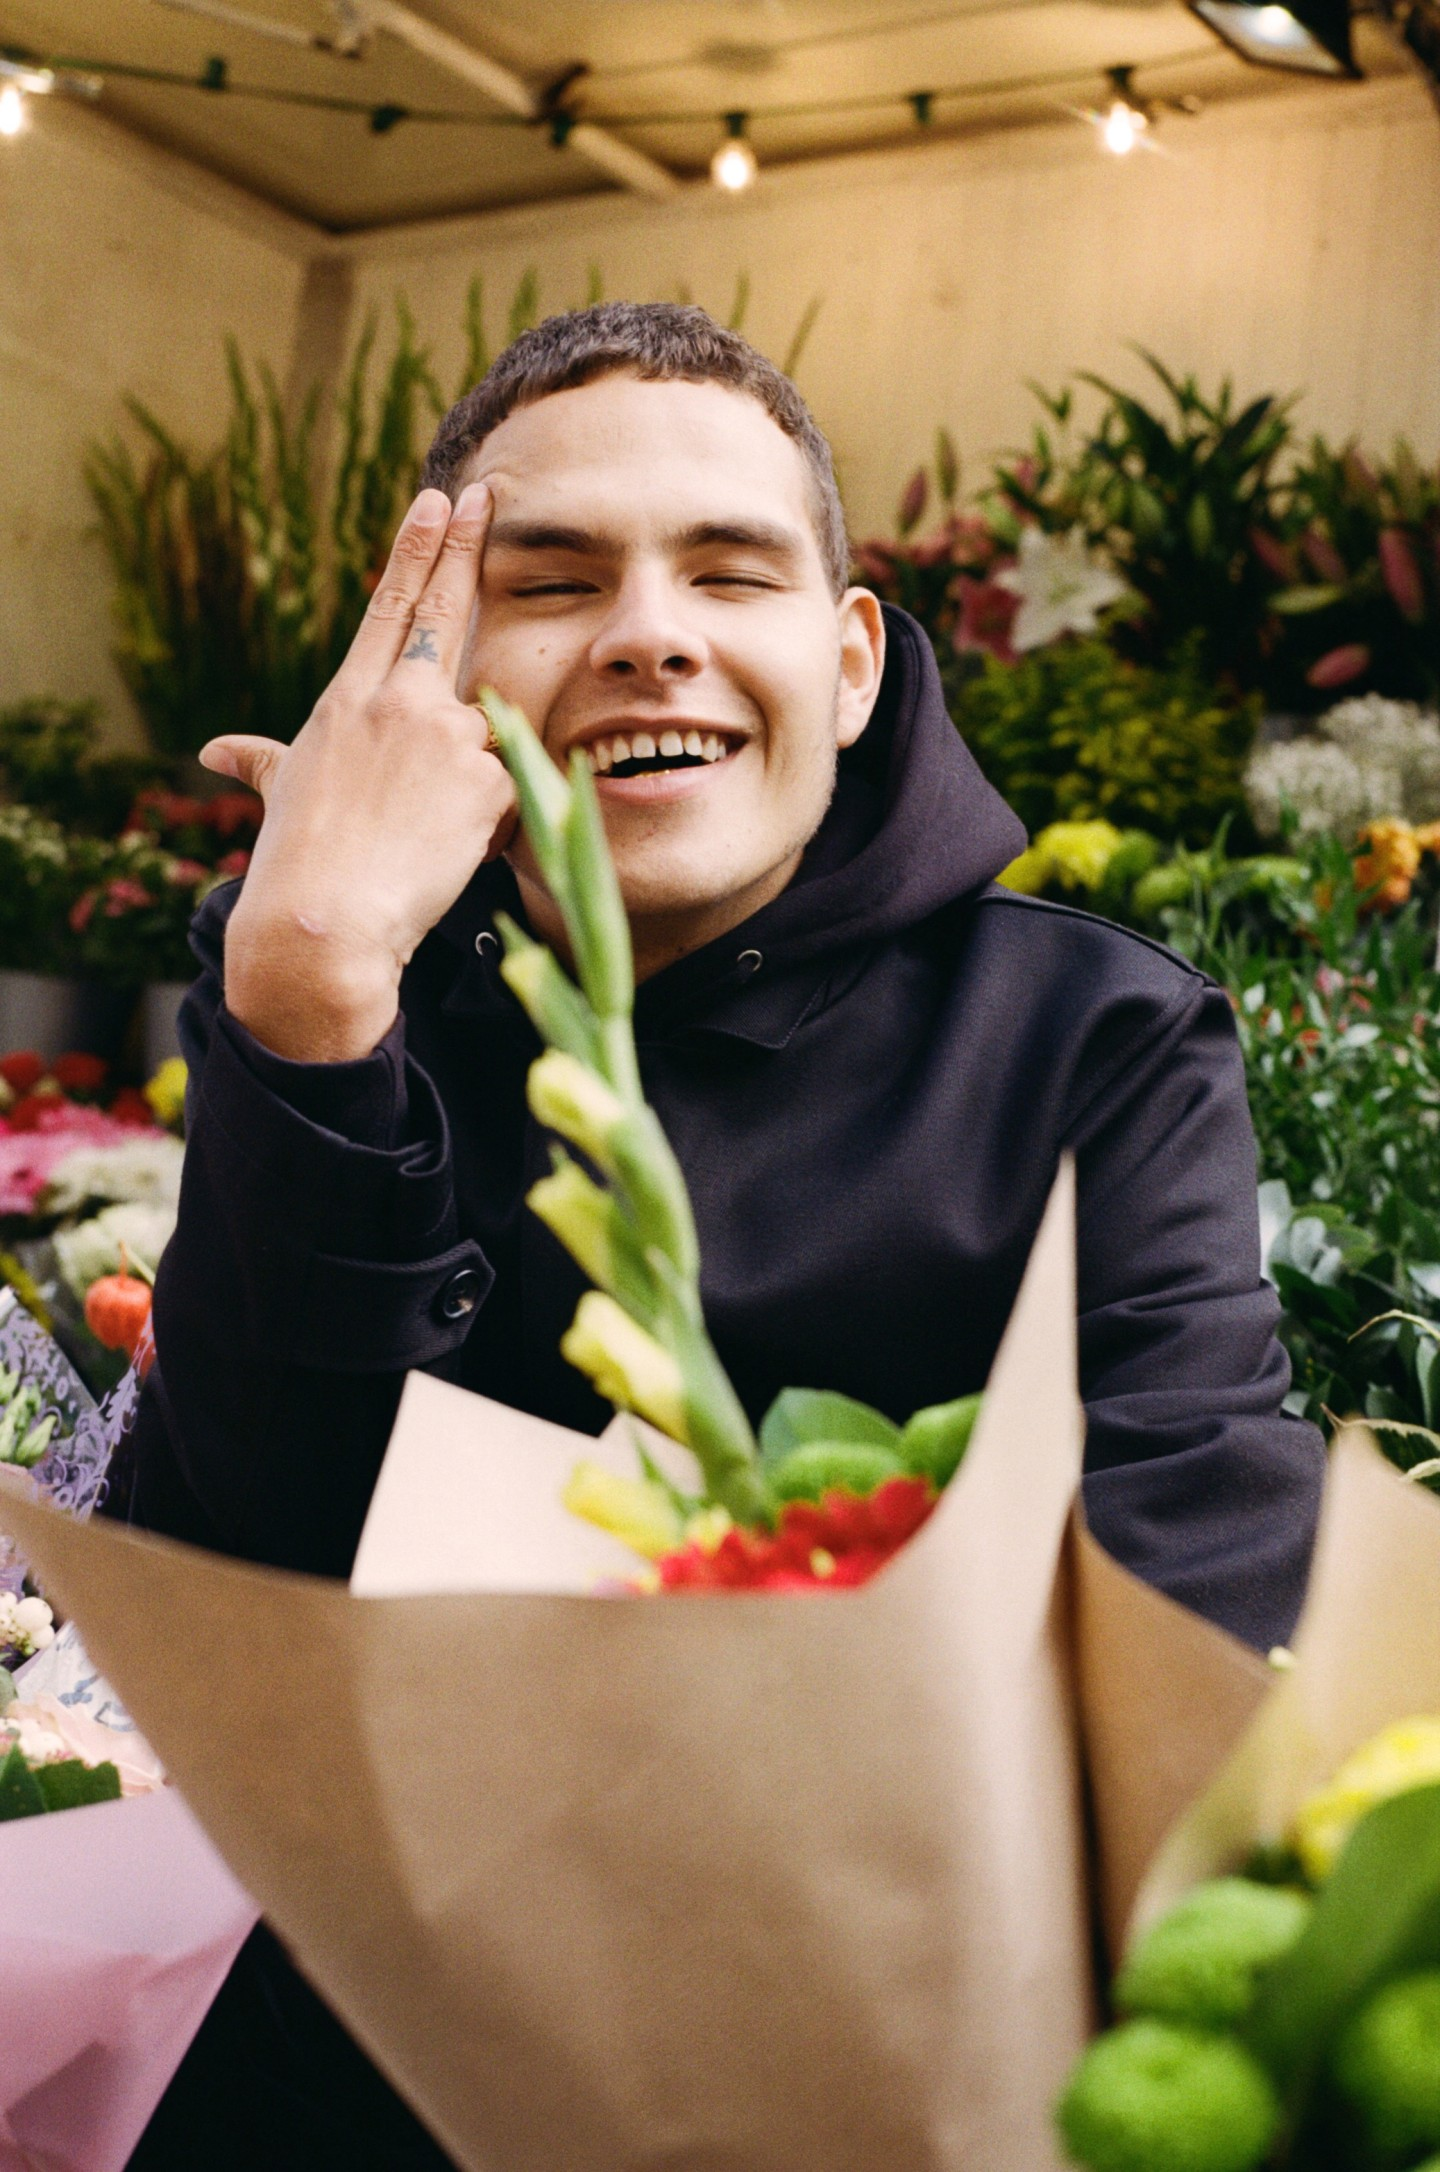 slowthai makes angry songs for a brighter future